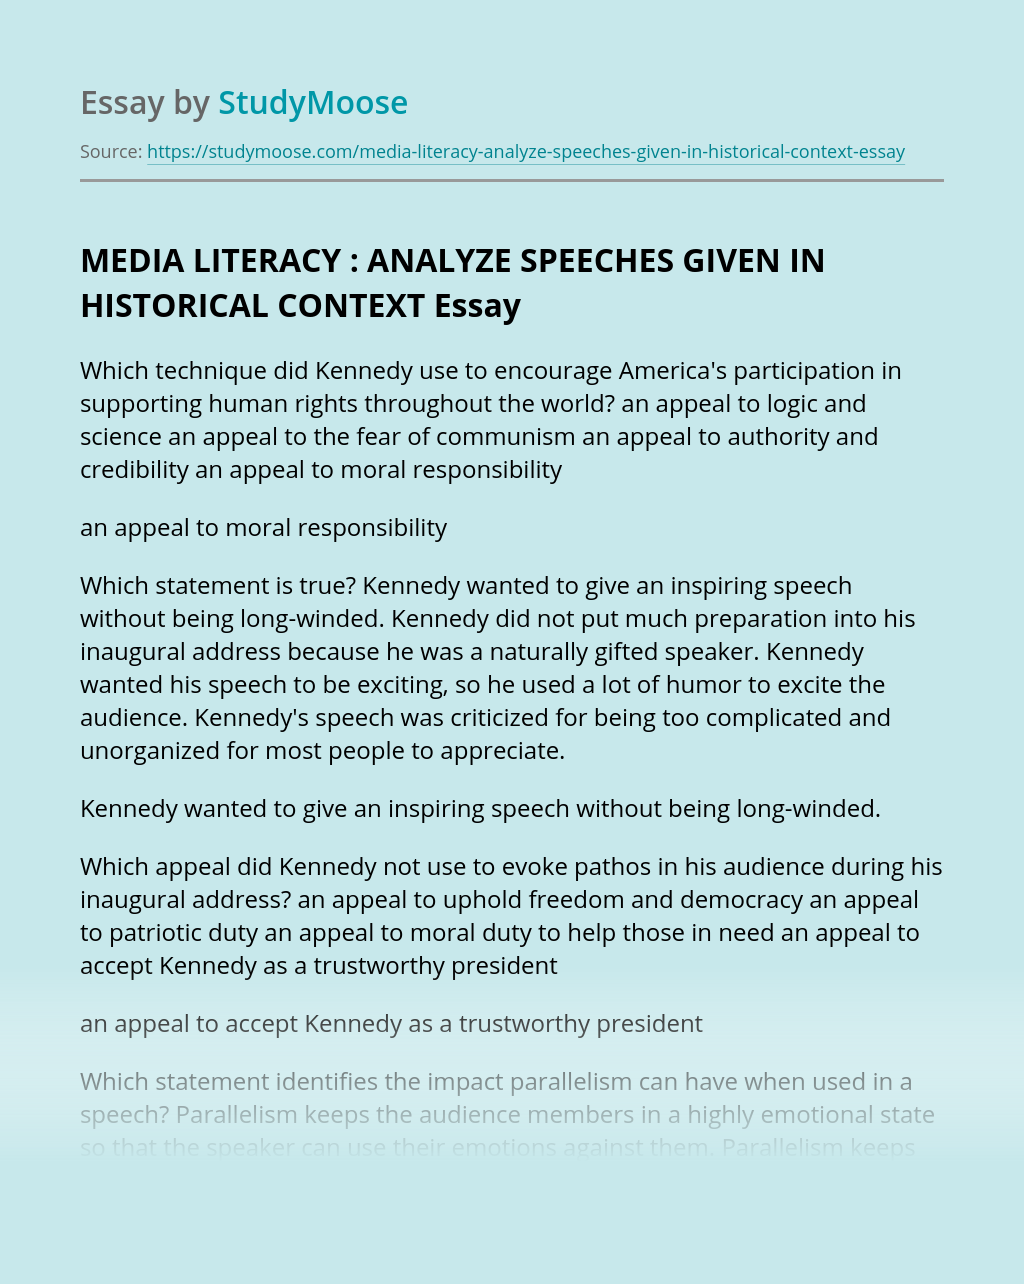 MEDIA LITERACY : ANALYZE SPEECHES GIVEN IN HISTORICAL CONTEXT